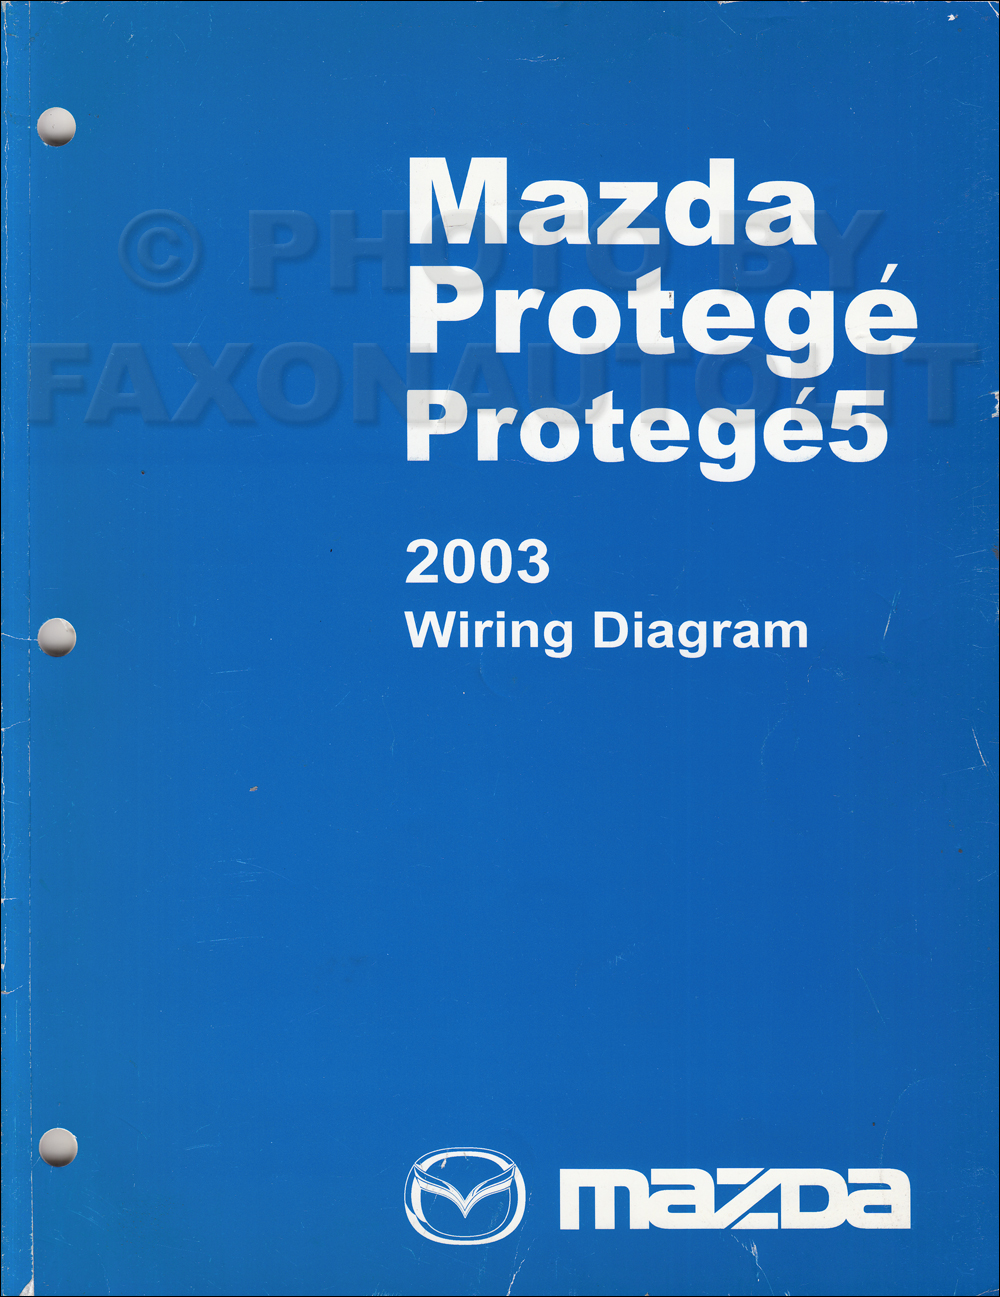 2003 Mazda Mpv Wiring Diagram List Of Schematic Circuit Headlight Protege And Protege5 Manual Original Rh Faxonautoliterature Com